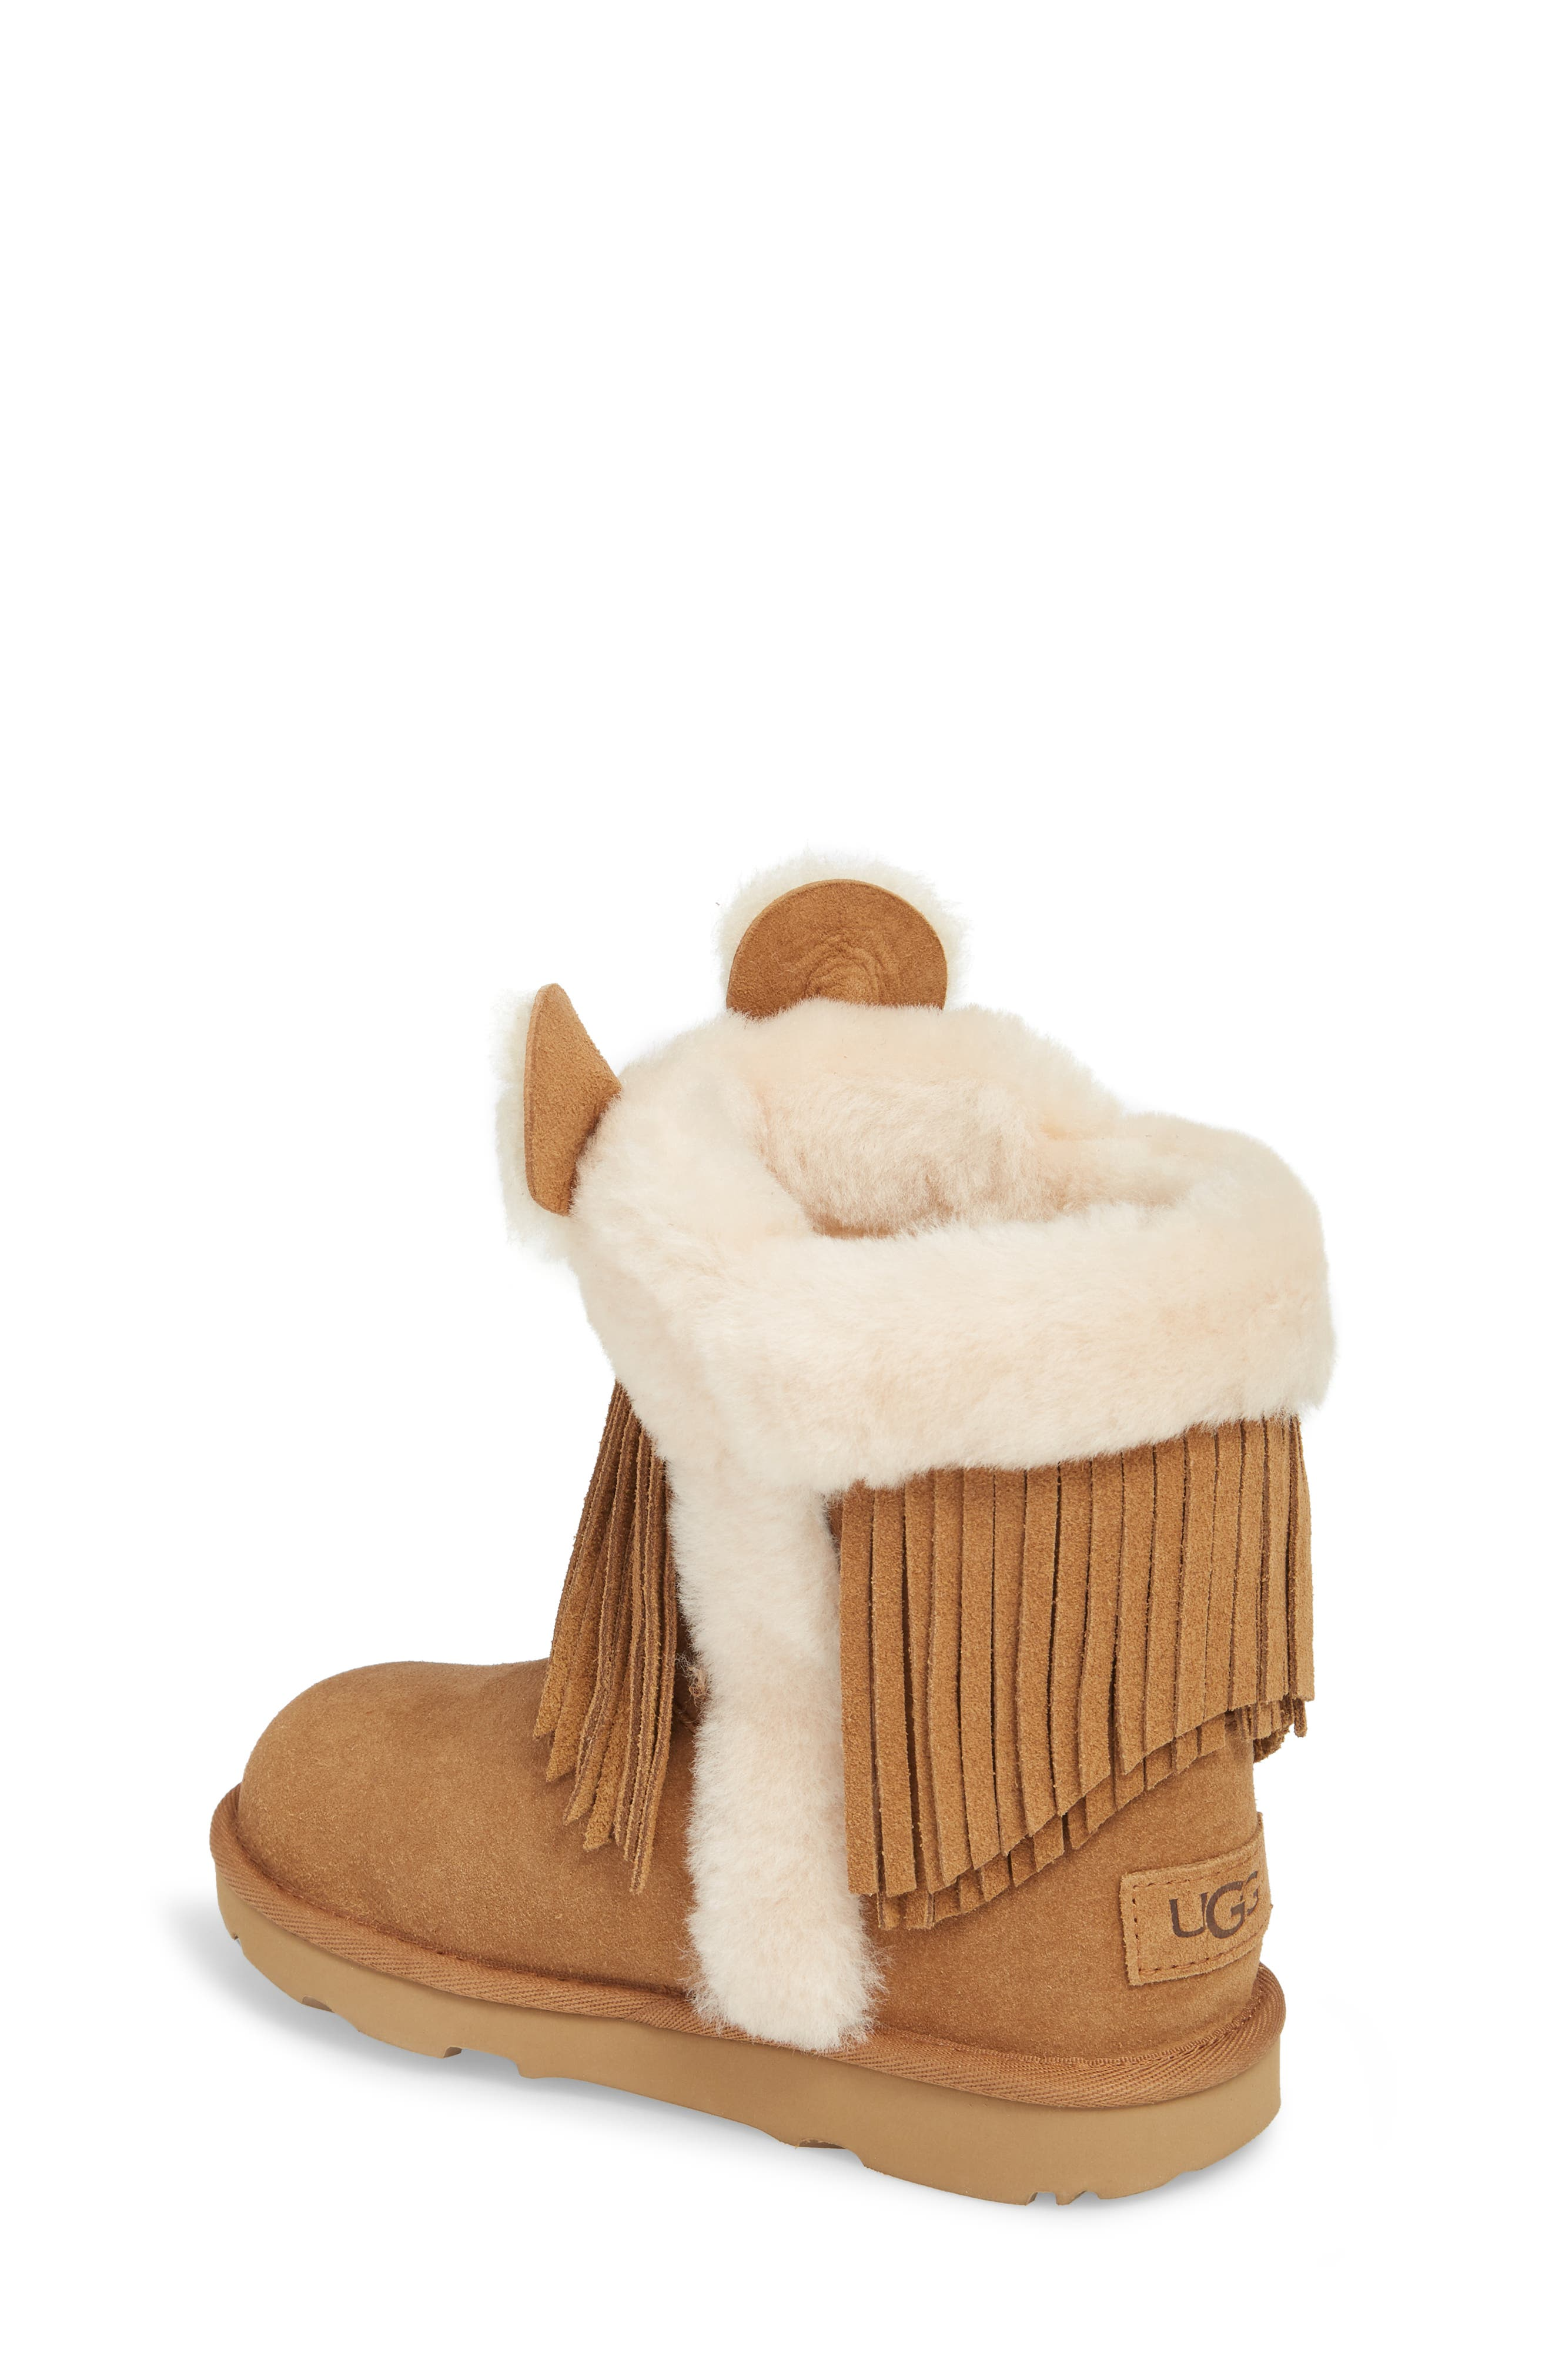 Darlala Classic II Genuine Shearling Boot,                             Alternate thumbnail 2, color,                             CHESTNUT